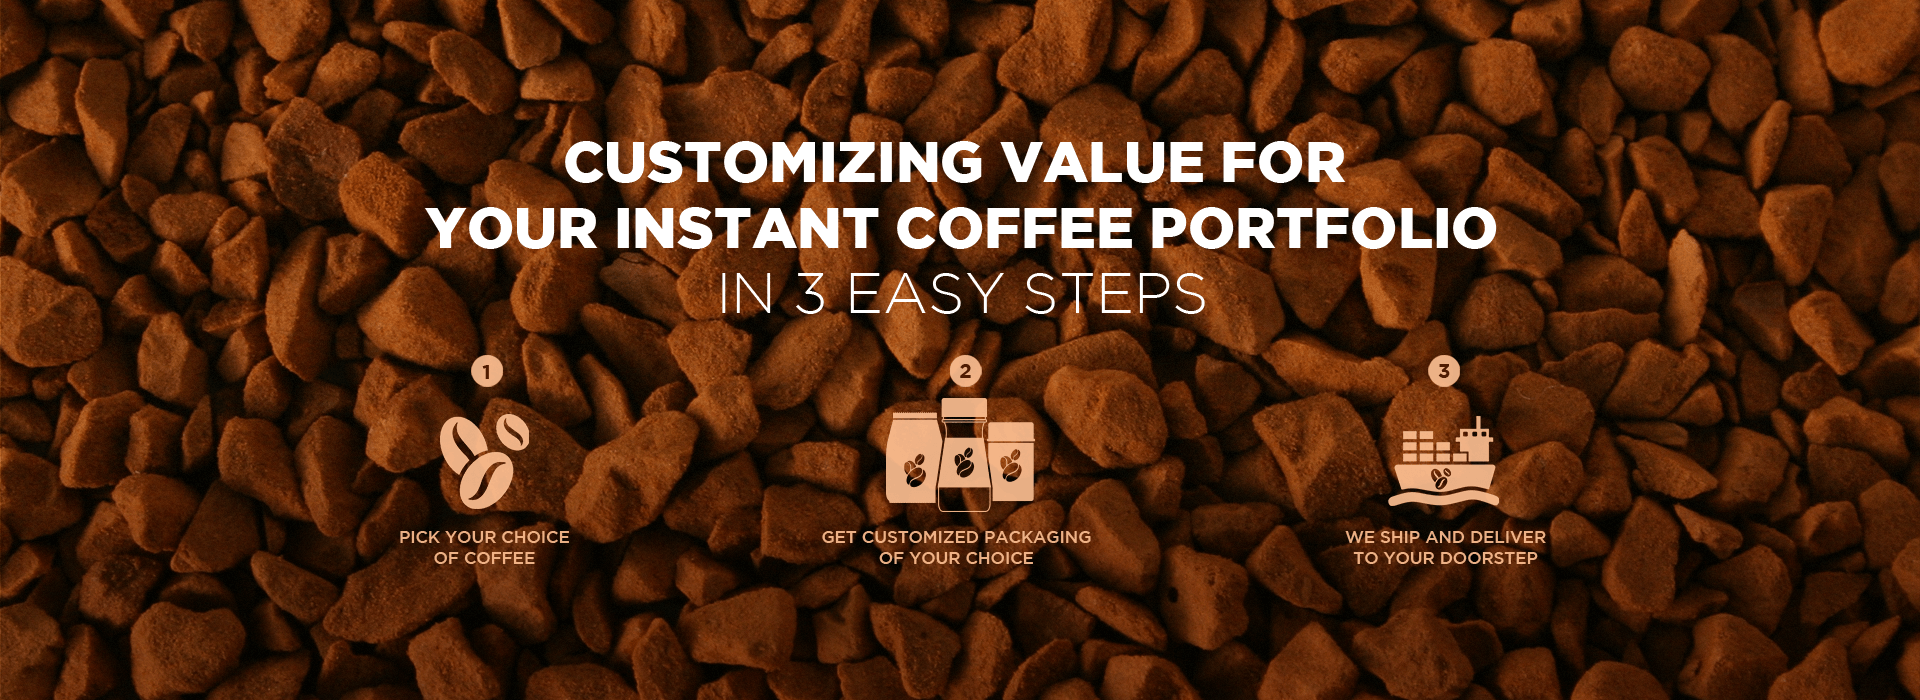 Customizing Value For Your Instant Coffee Portfolio  - Desktop - Tata Coffee